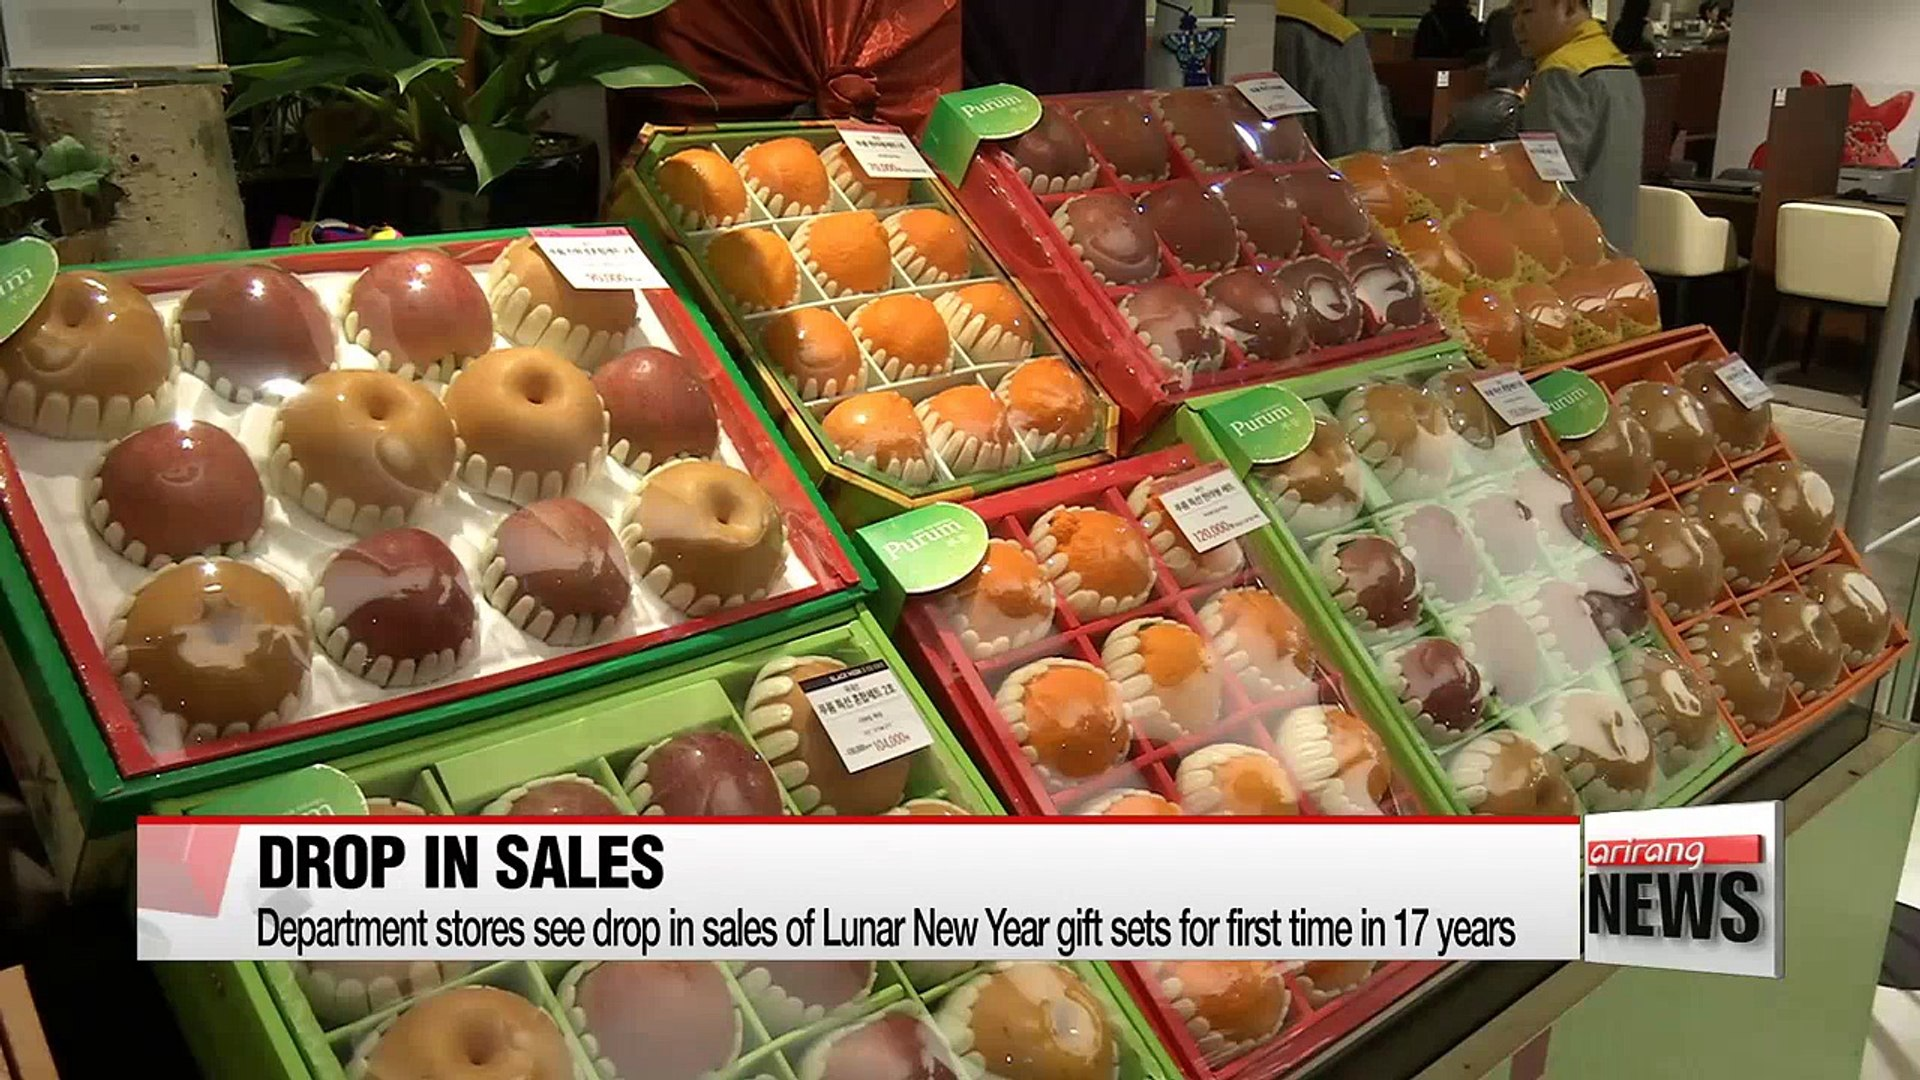 Department stores see drop in sales of Lunar New Year gift sets for first time in 17 years